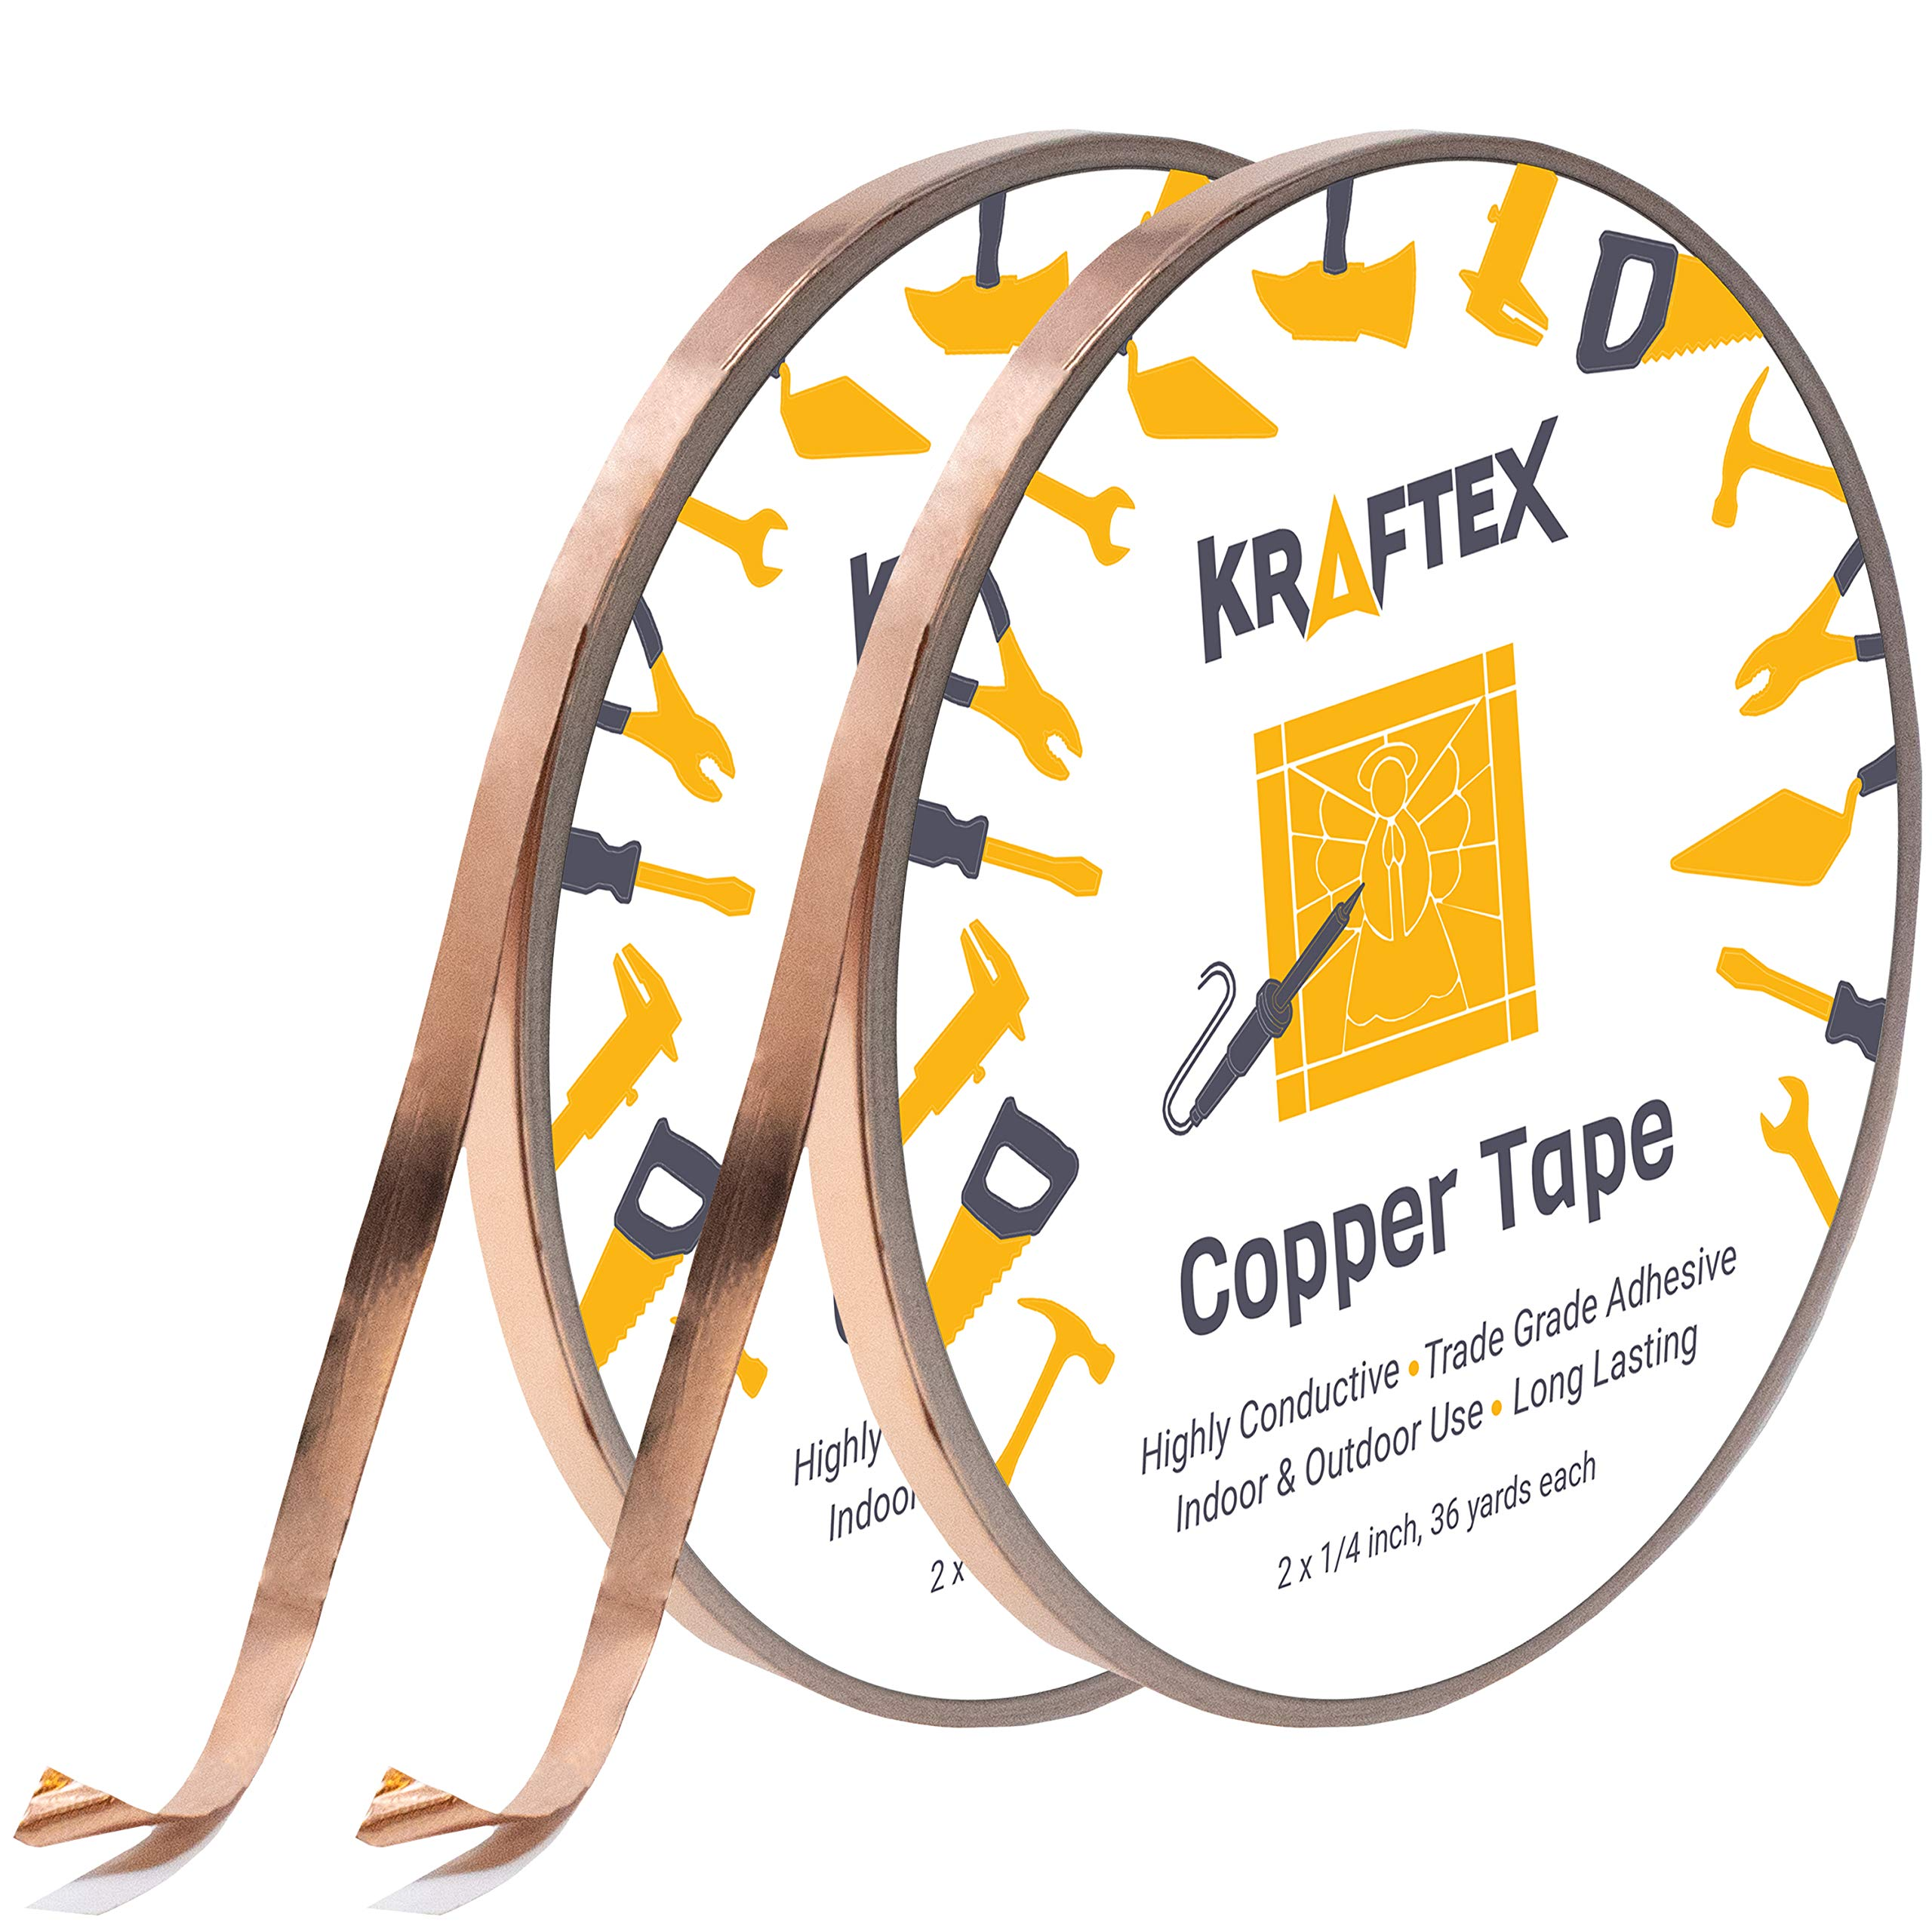 Copper Foil Tape [2 HUGE ROLLS] (1/4inch X 36yd each) 72 Yard Pack with Conductive Adhesive - Stained Glass, Soldering, Electrical Repair, Grounding, EMI Shielding - Extra Value Pack- Thicker Foil